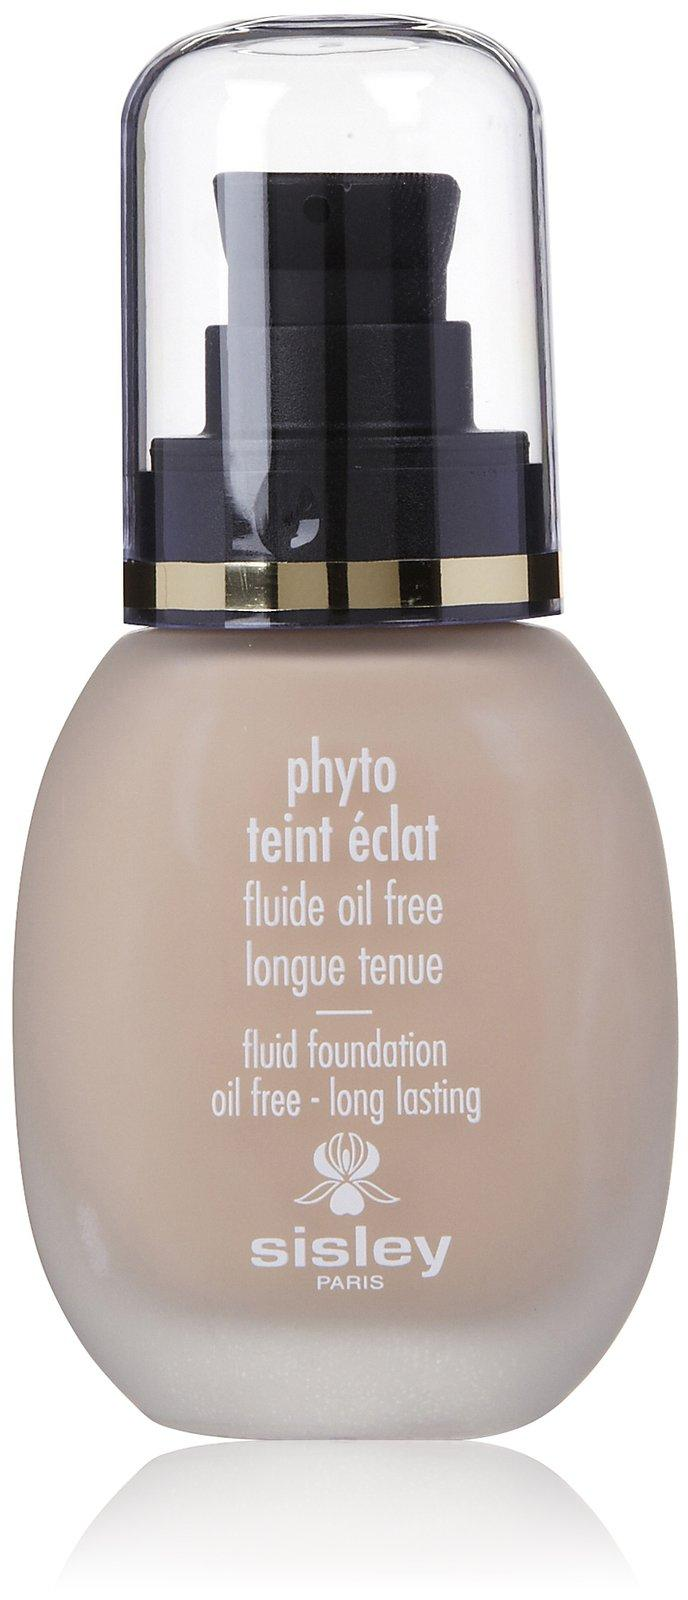 Sisley-paris Oil Free Foundation-3+